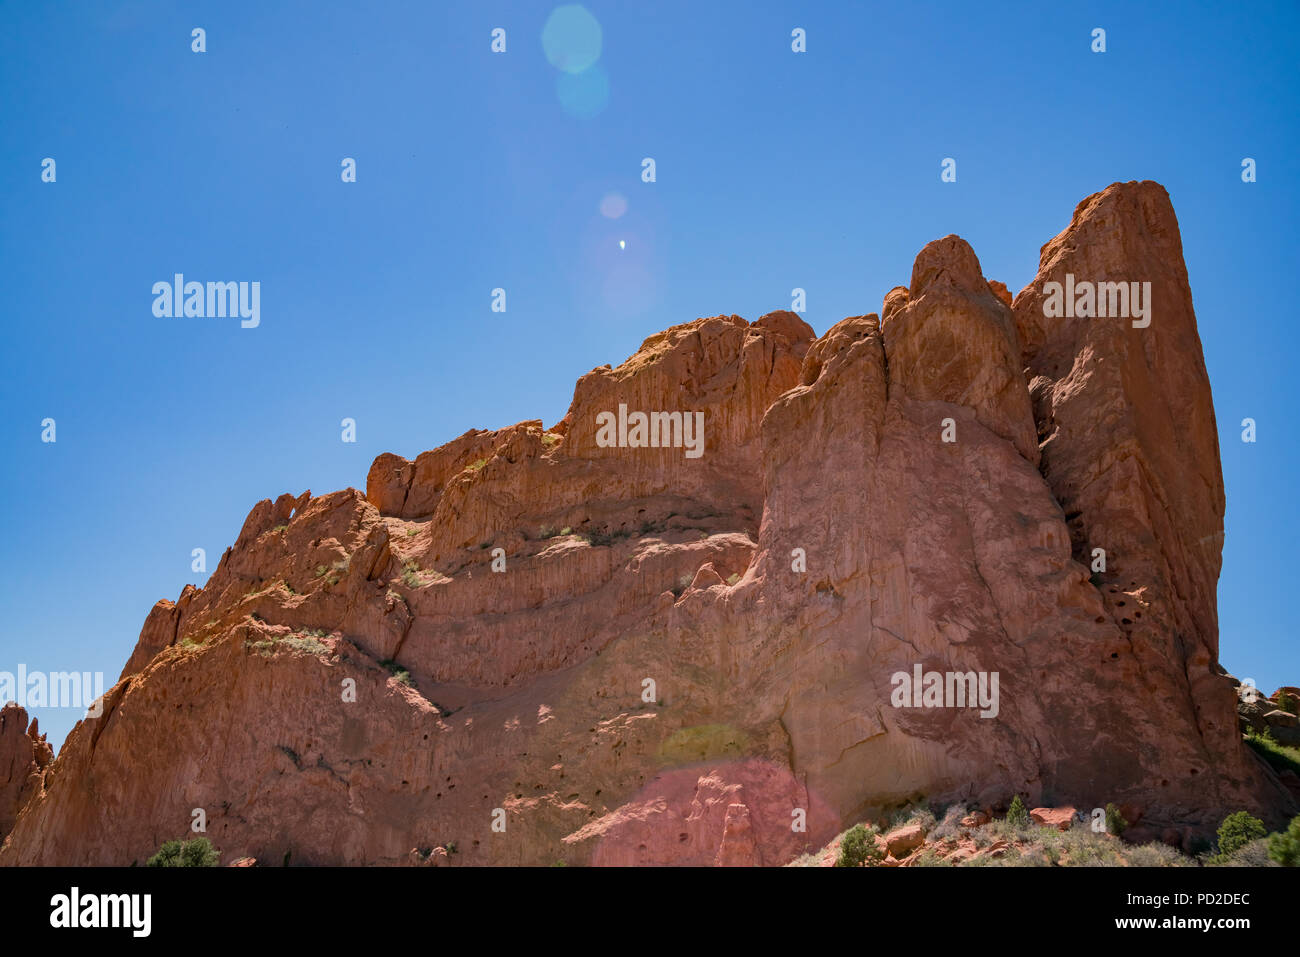 Beautiful landscape of the famous Garden of the Gods at Manitou Springs, Colorado - Stock Image